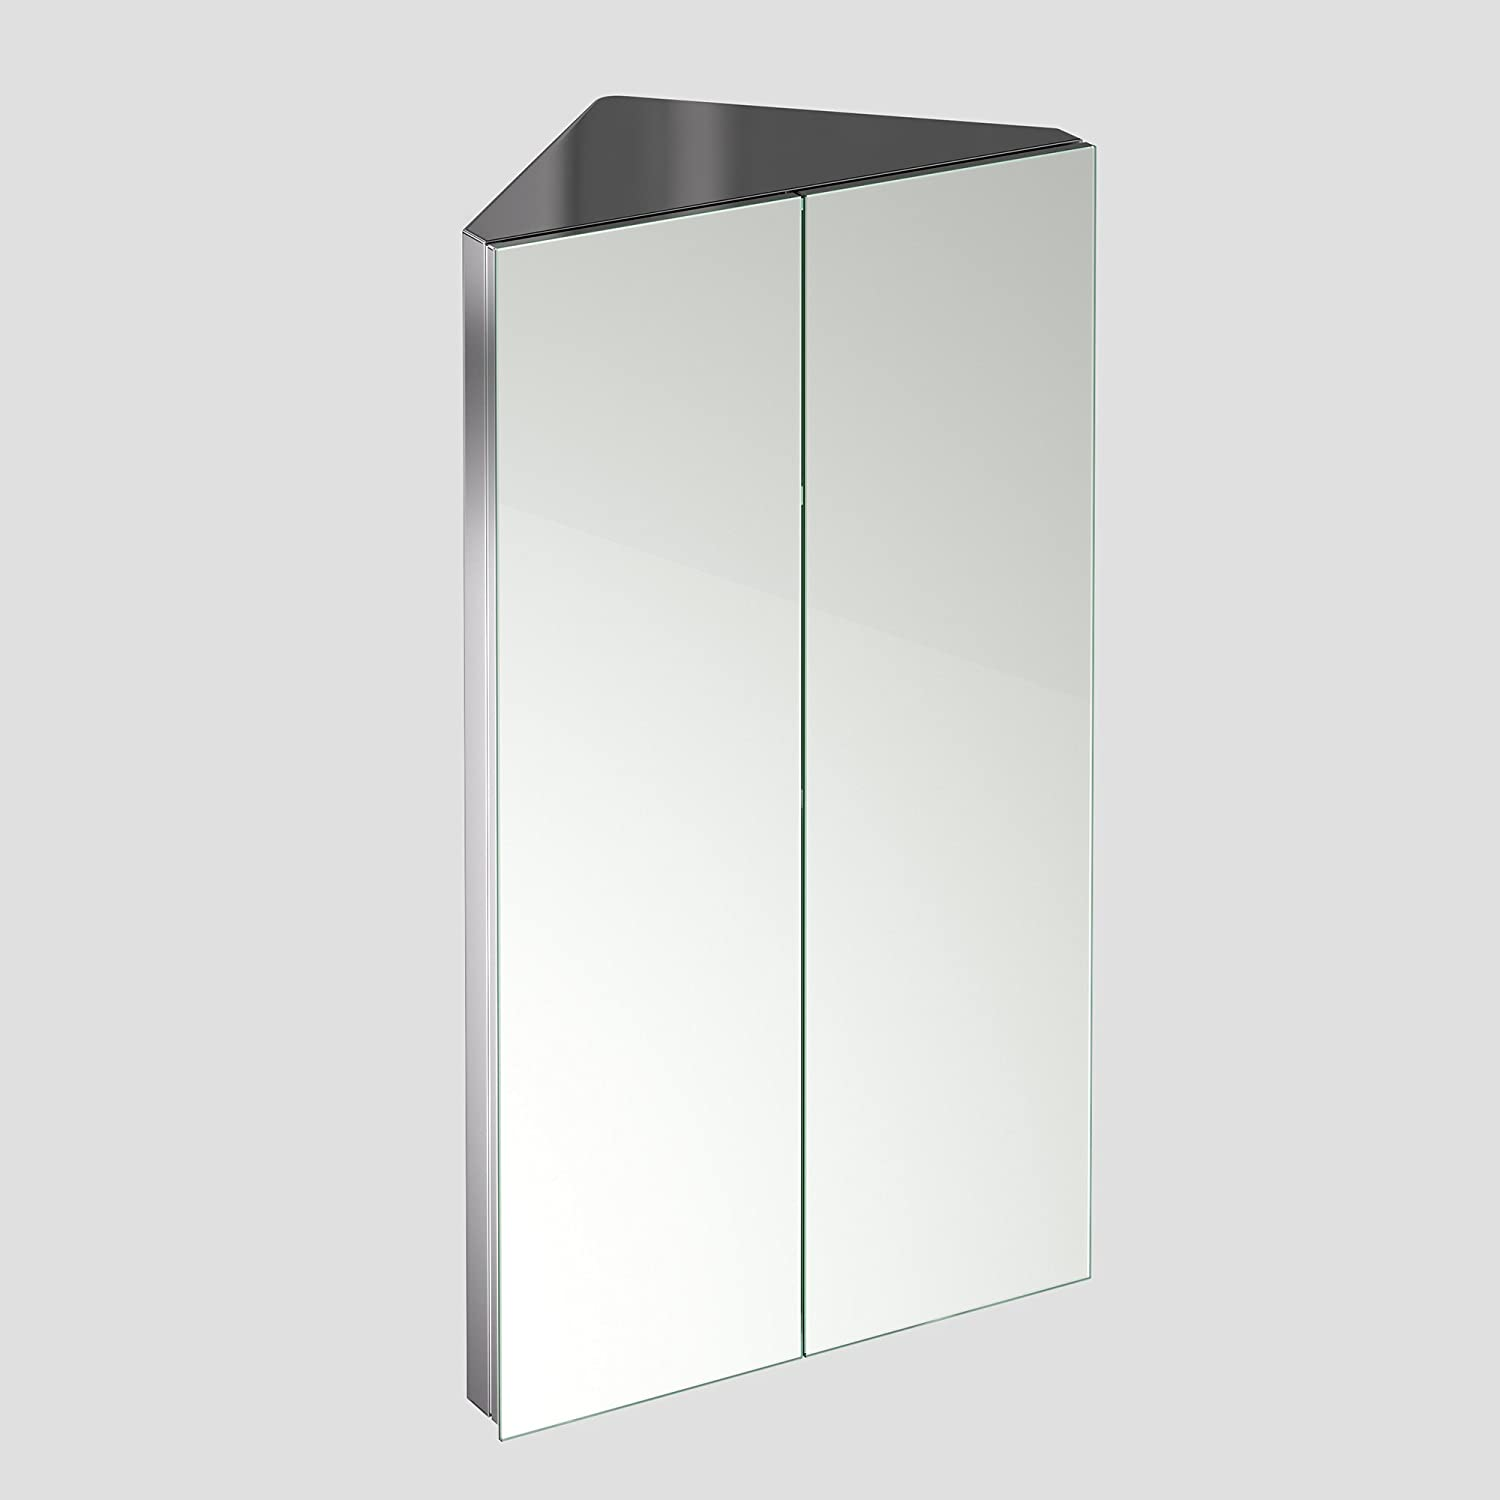 780 x 450 Stainless Steel Corner Bathroom Mirror Cabinet Modern 2 ...